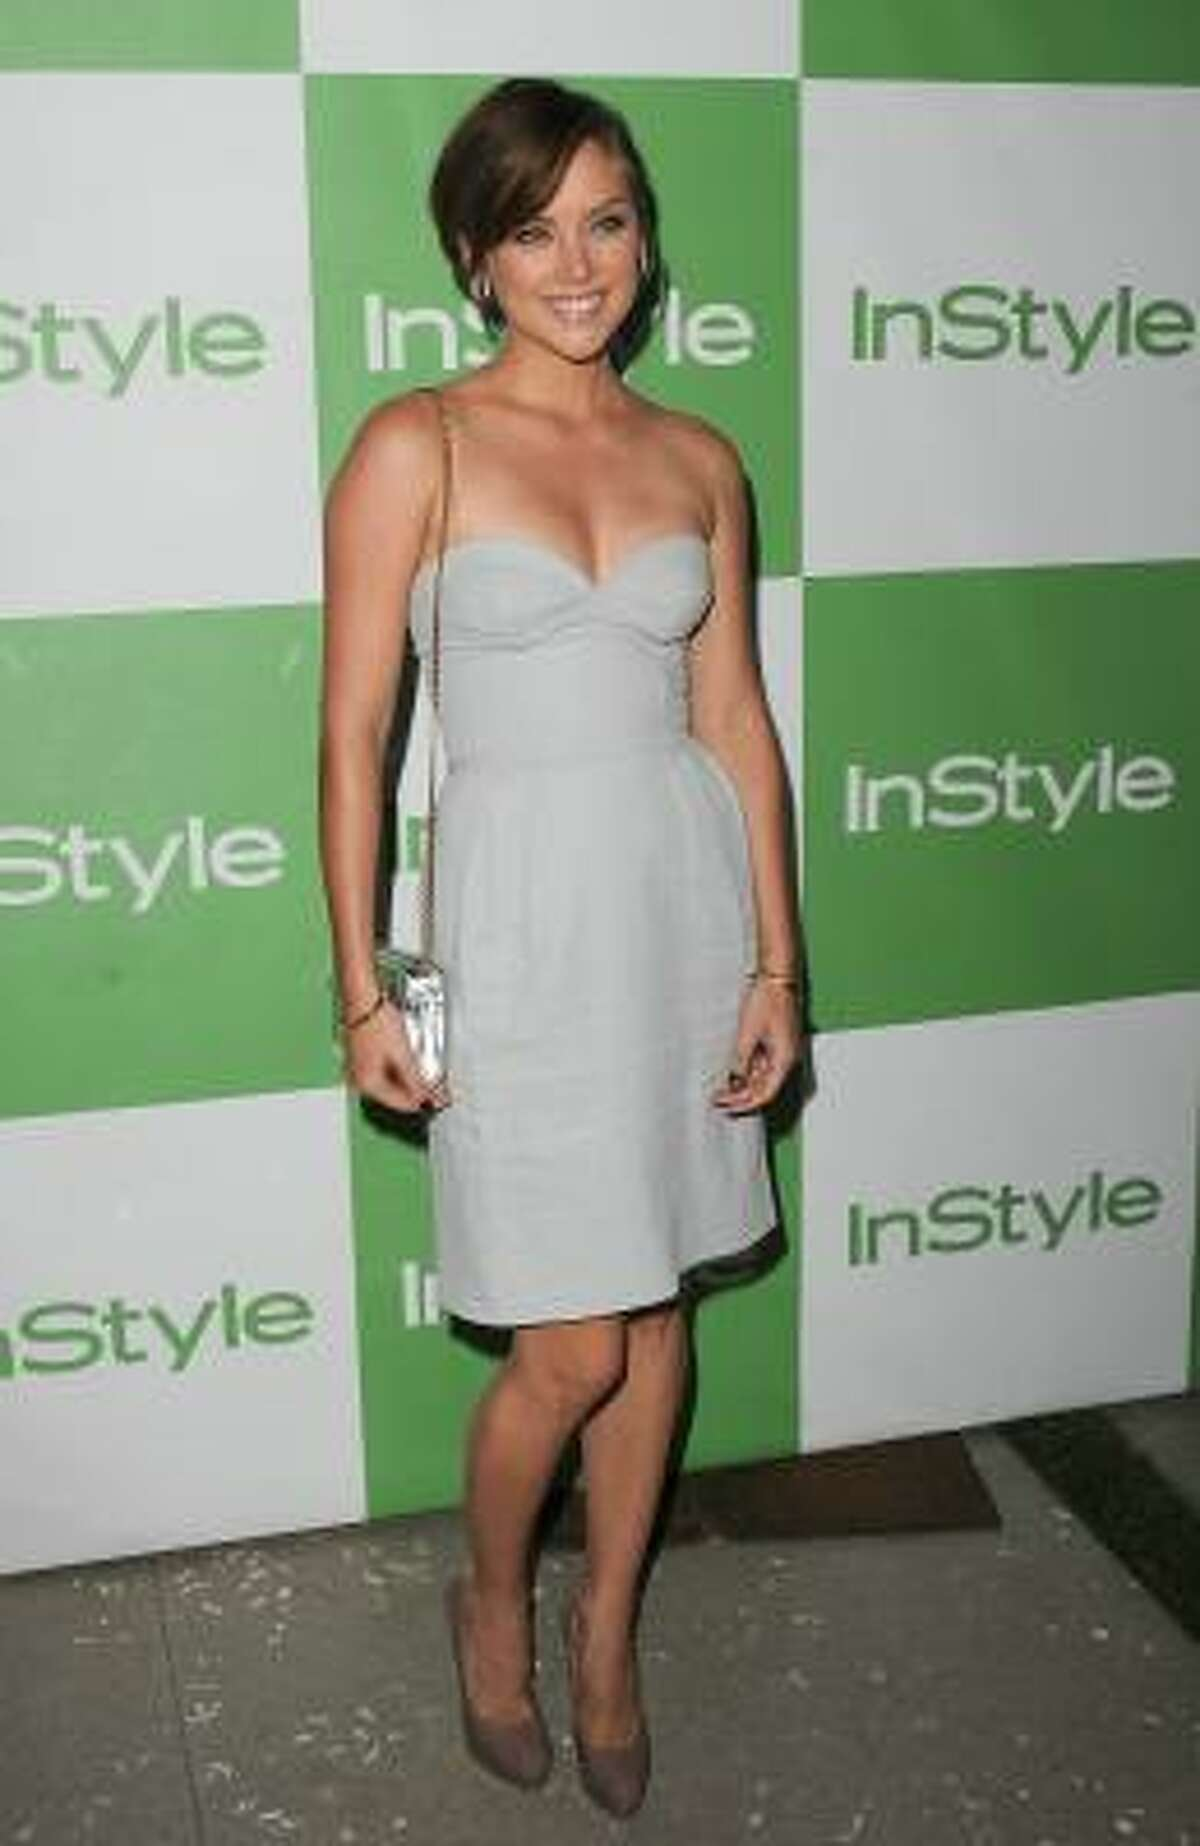 Jessica Stroup The 90210 star certainly knows how to dress for L.A. This summery Stella McCarney dress, with Brian Atwood shoes and Jimmy Choo bag, works perfectly.